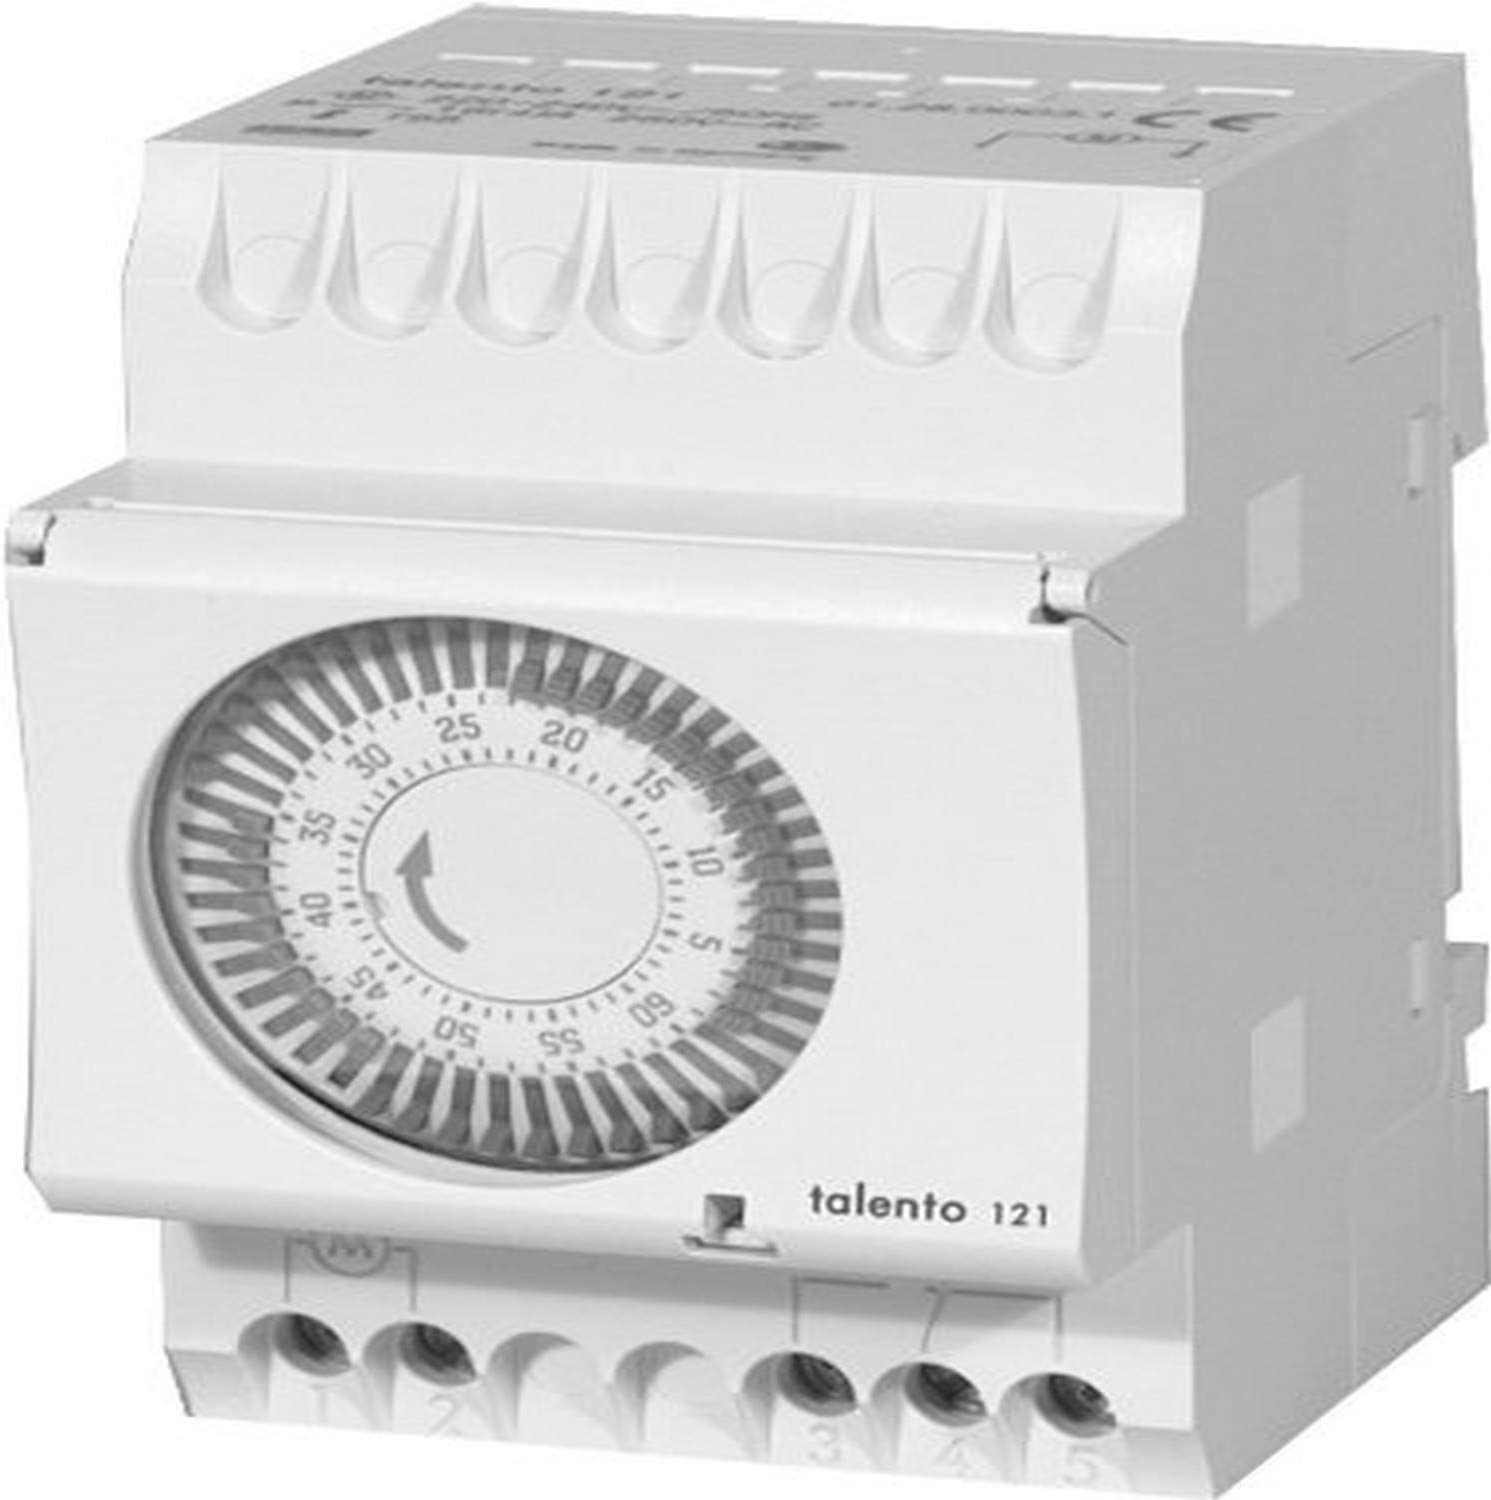 In a popularity Intermatic Talento 121-120 1-Hour OFFicial shop Electromechanical T 120V Cycle